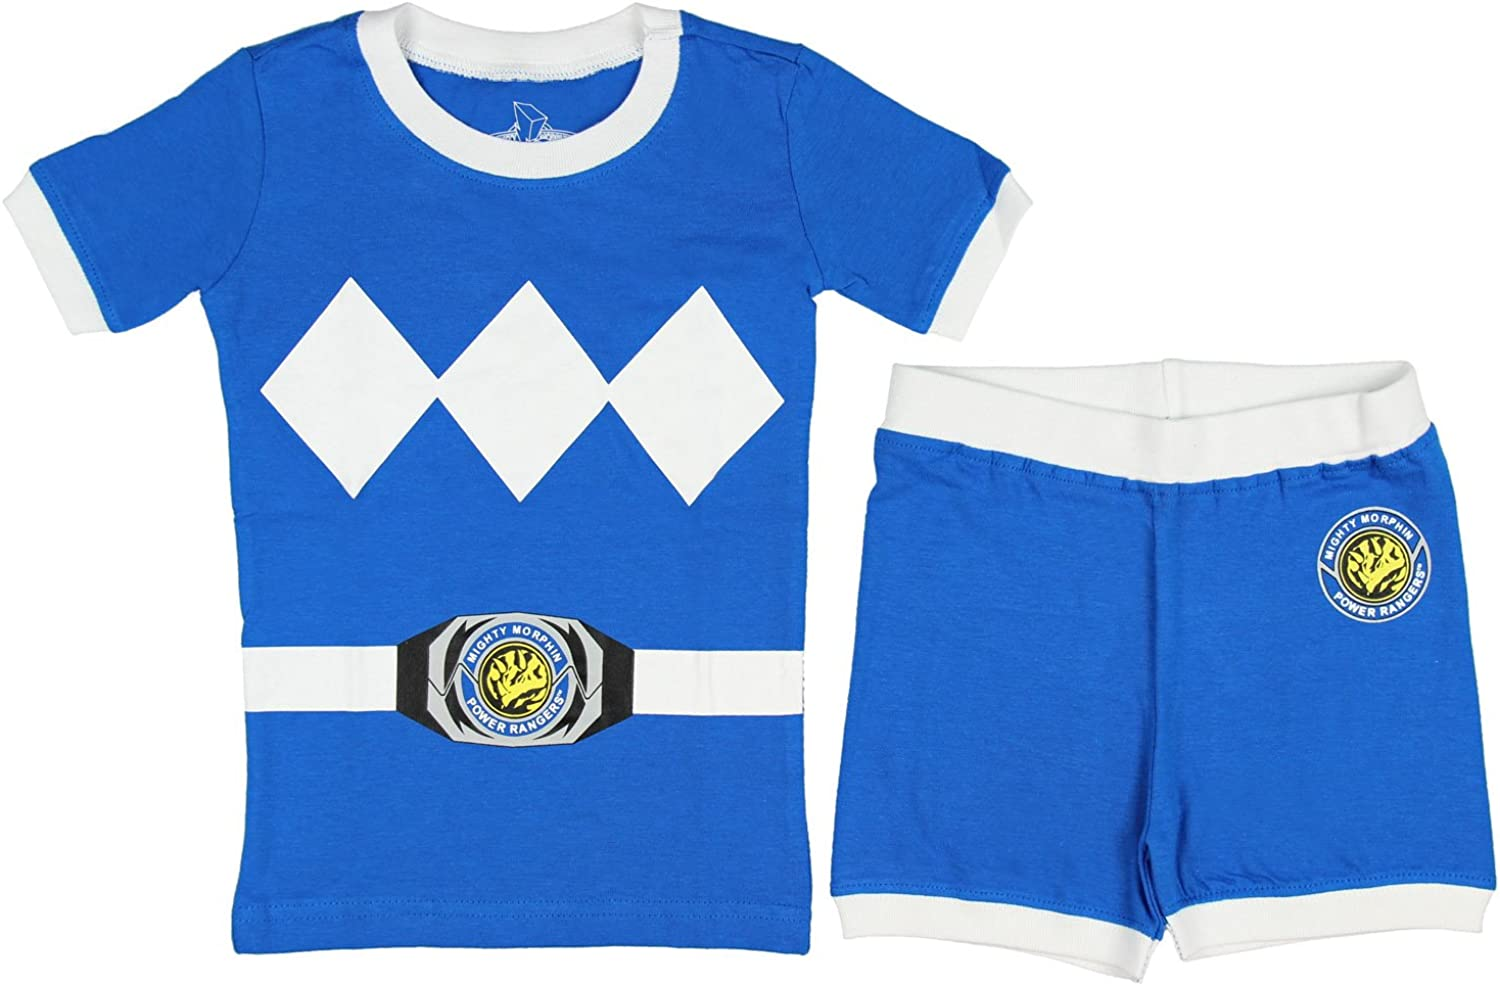 Power Rangers Toddler Character Cotton Pajama